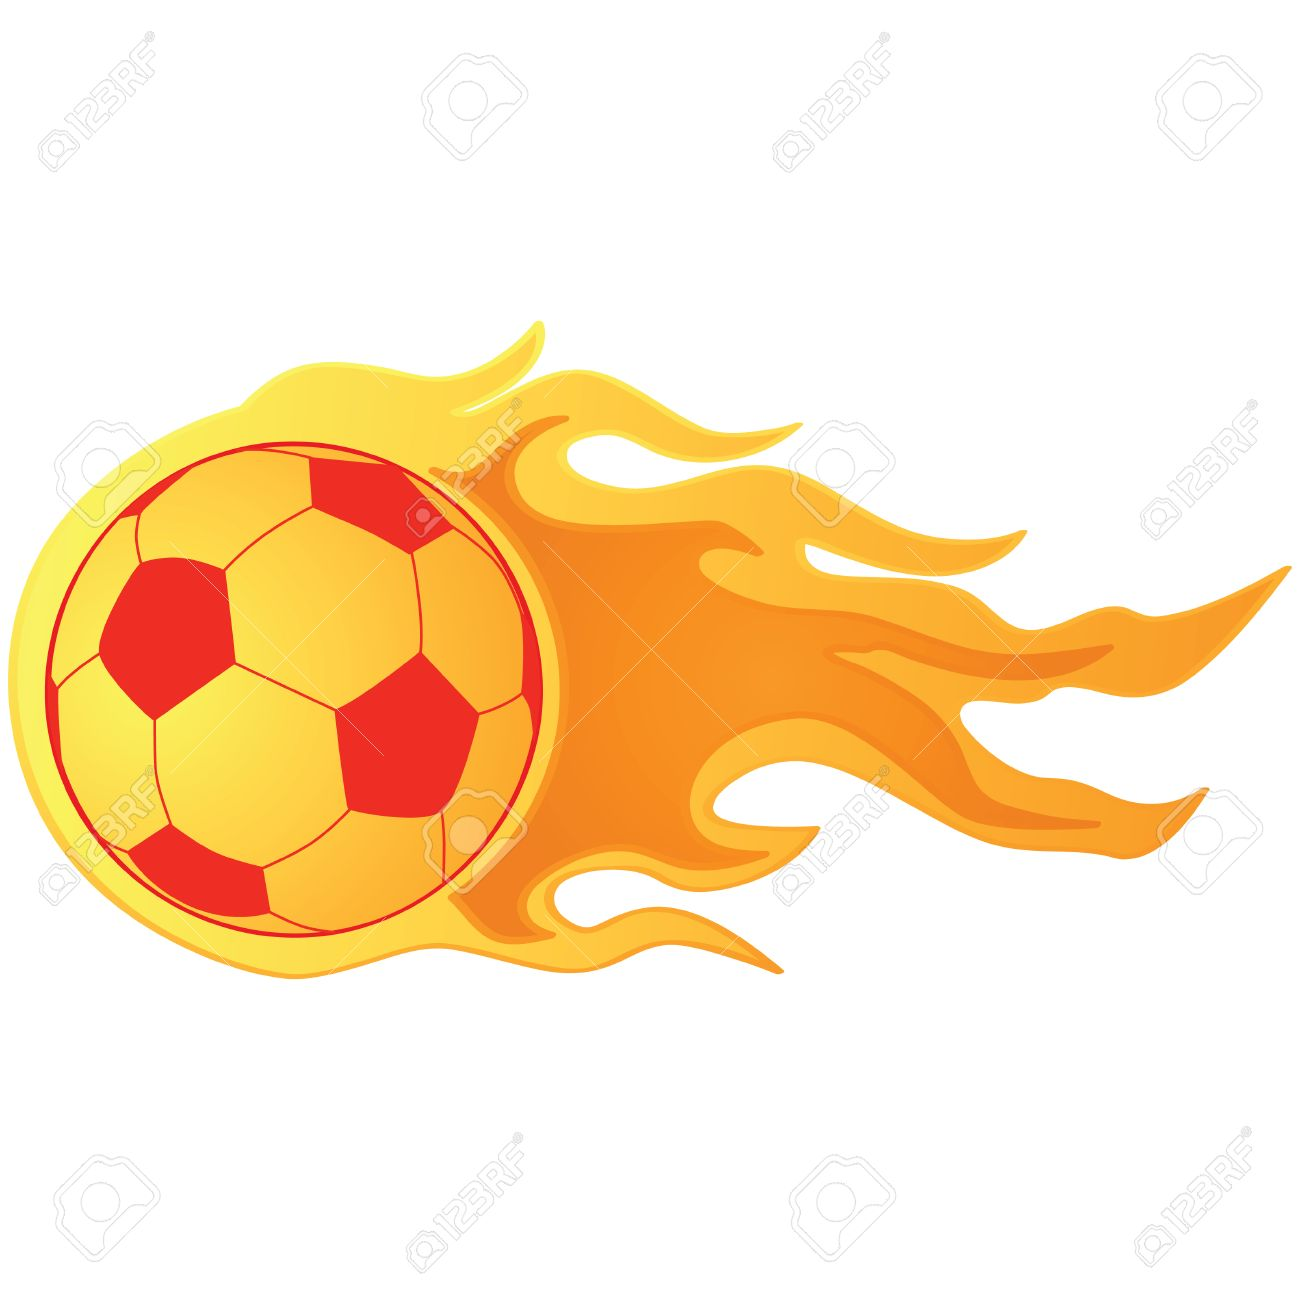 illustration of a fast moving soccer ball on fire royalty free